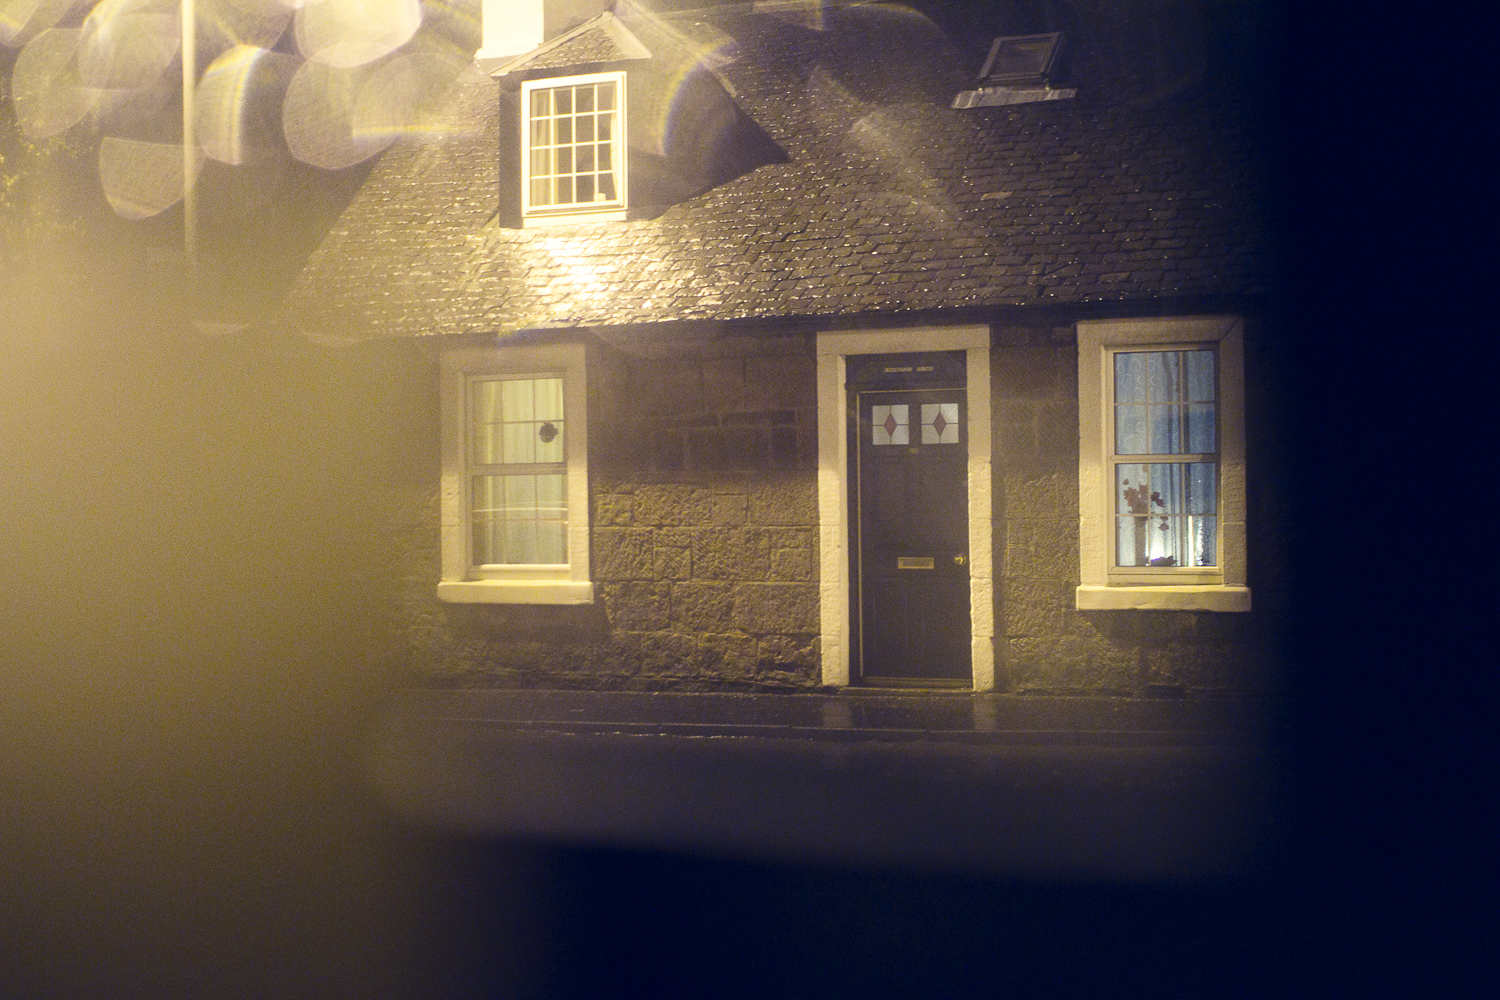 Cottage in the rain-ColinJCampbell